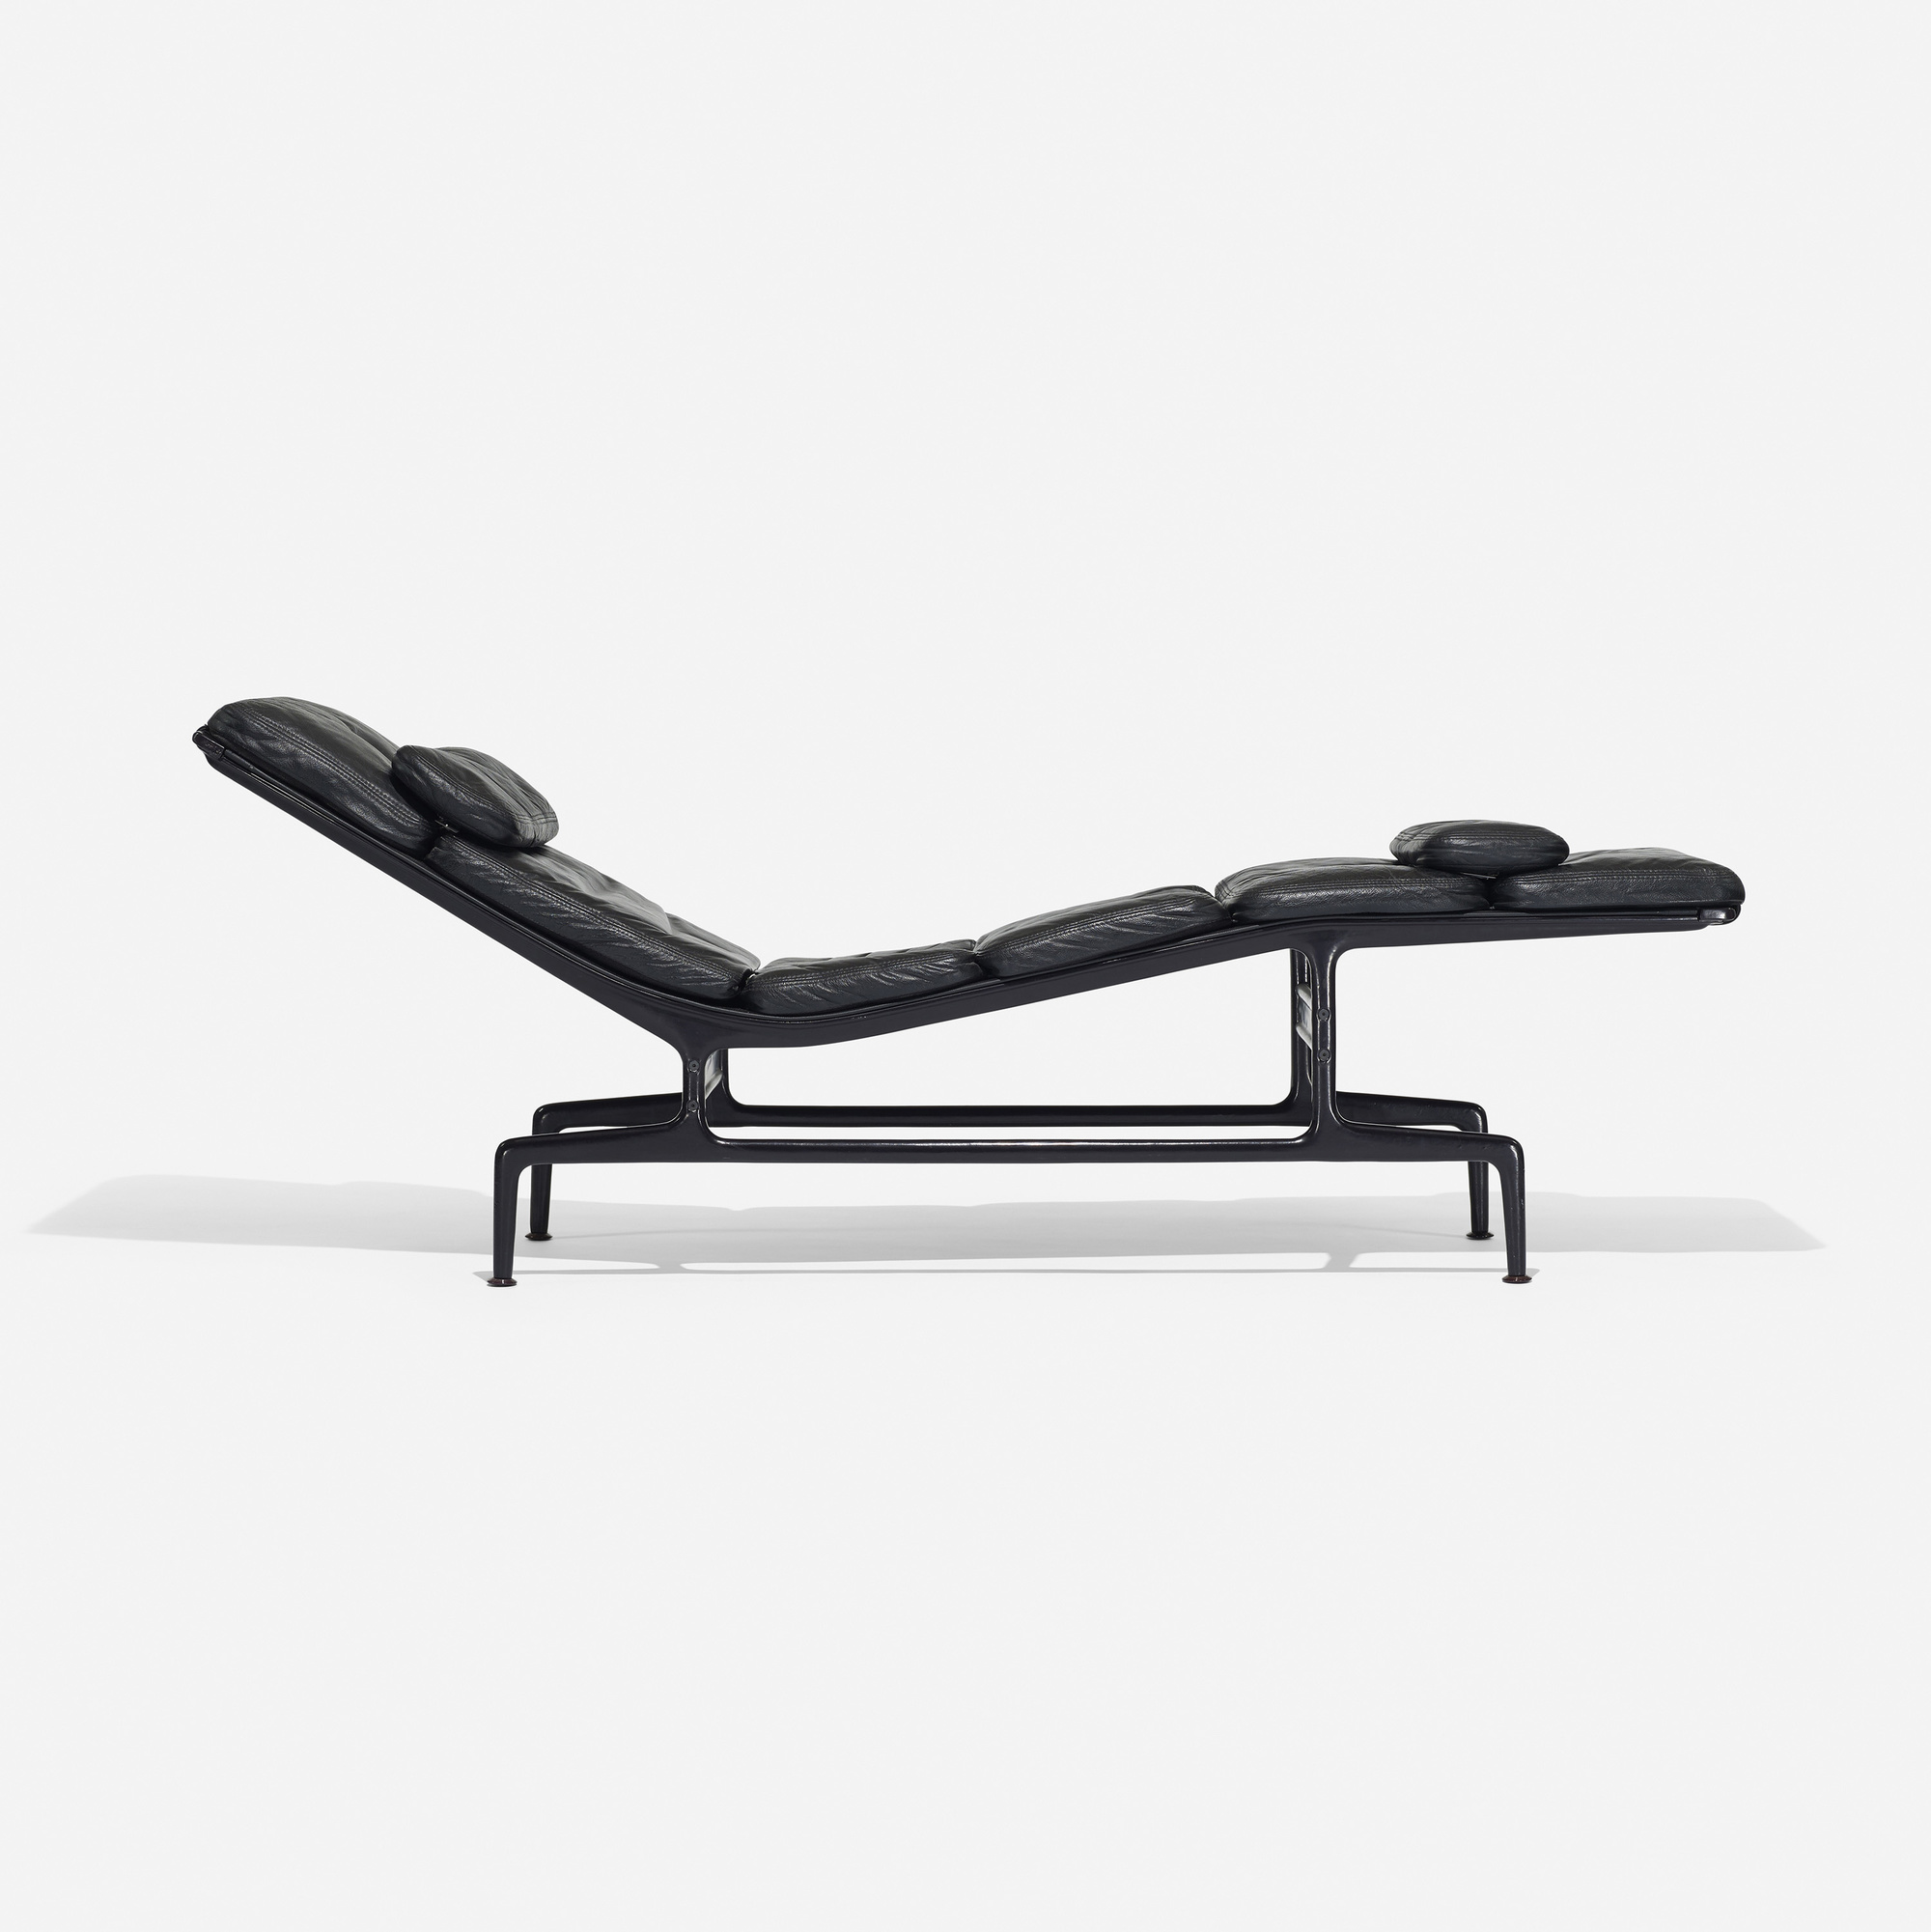 182: Charles And Ray Eames / Billy Wilder Chaise (1 Of 3)